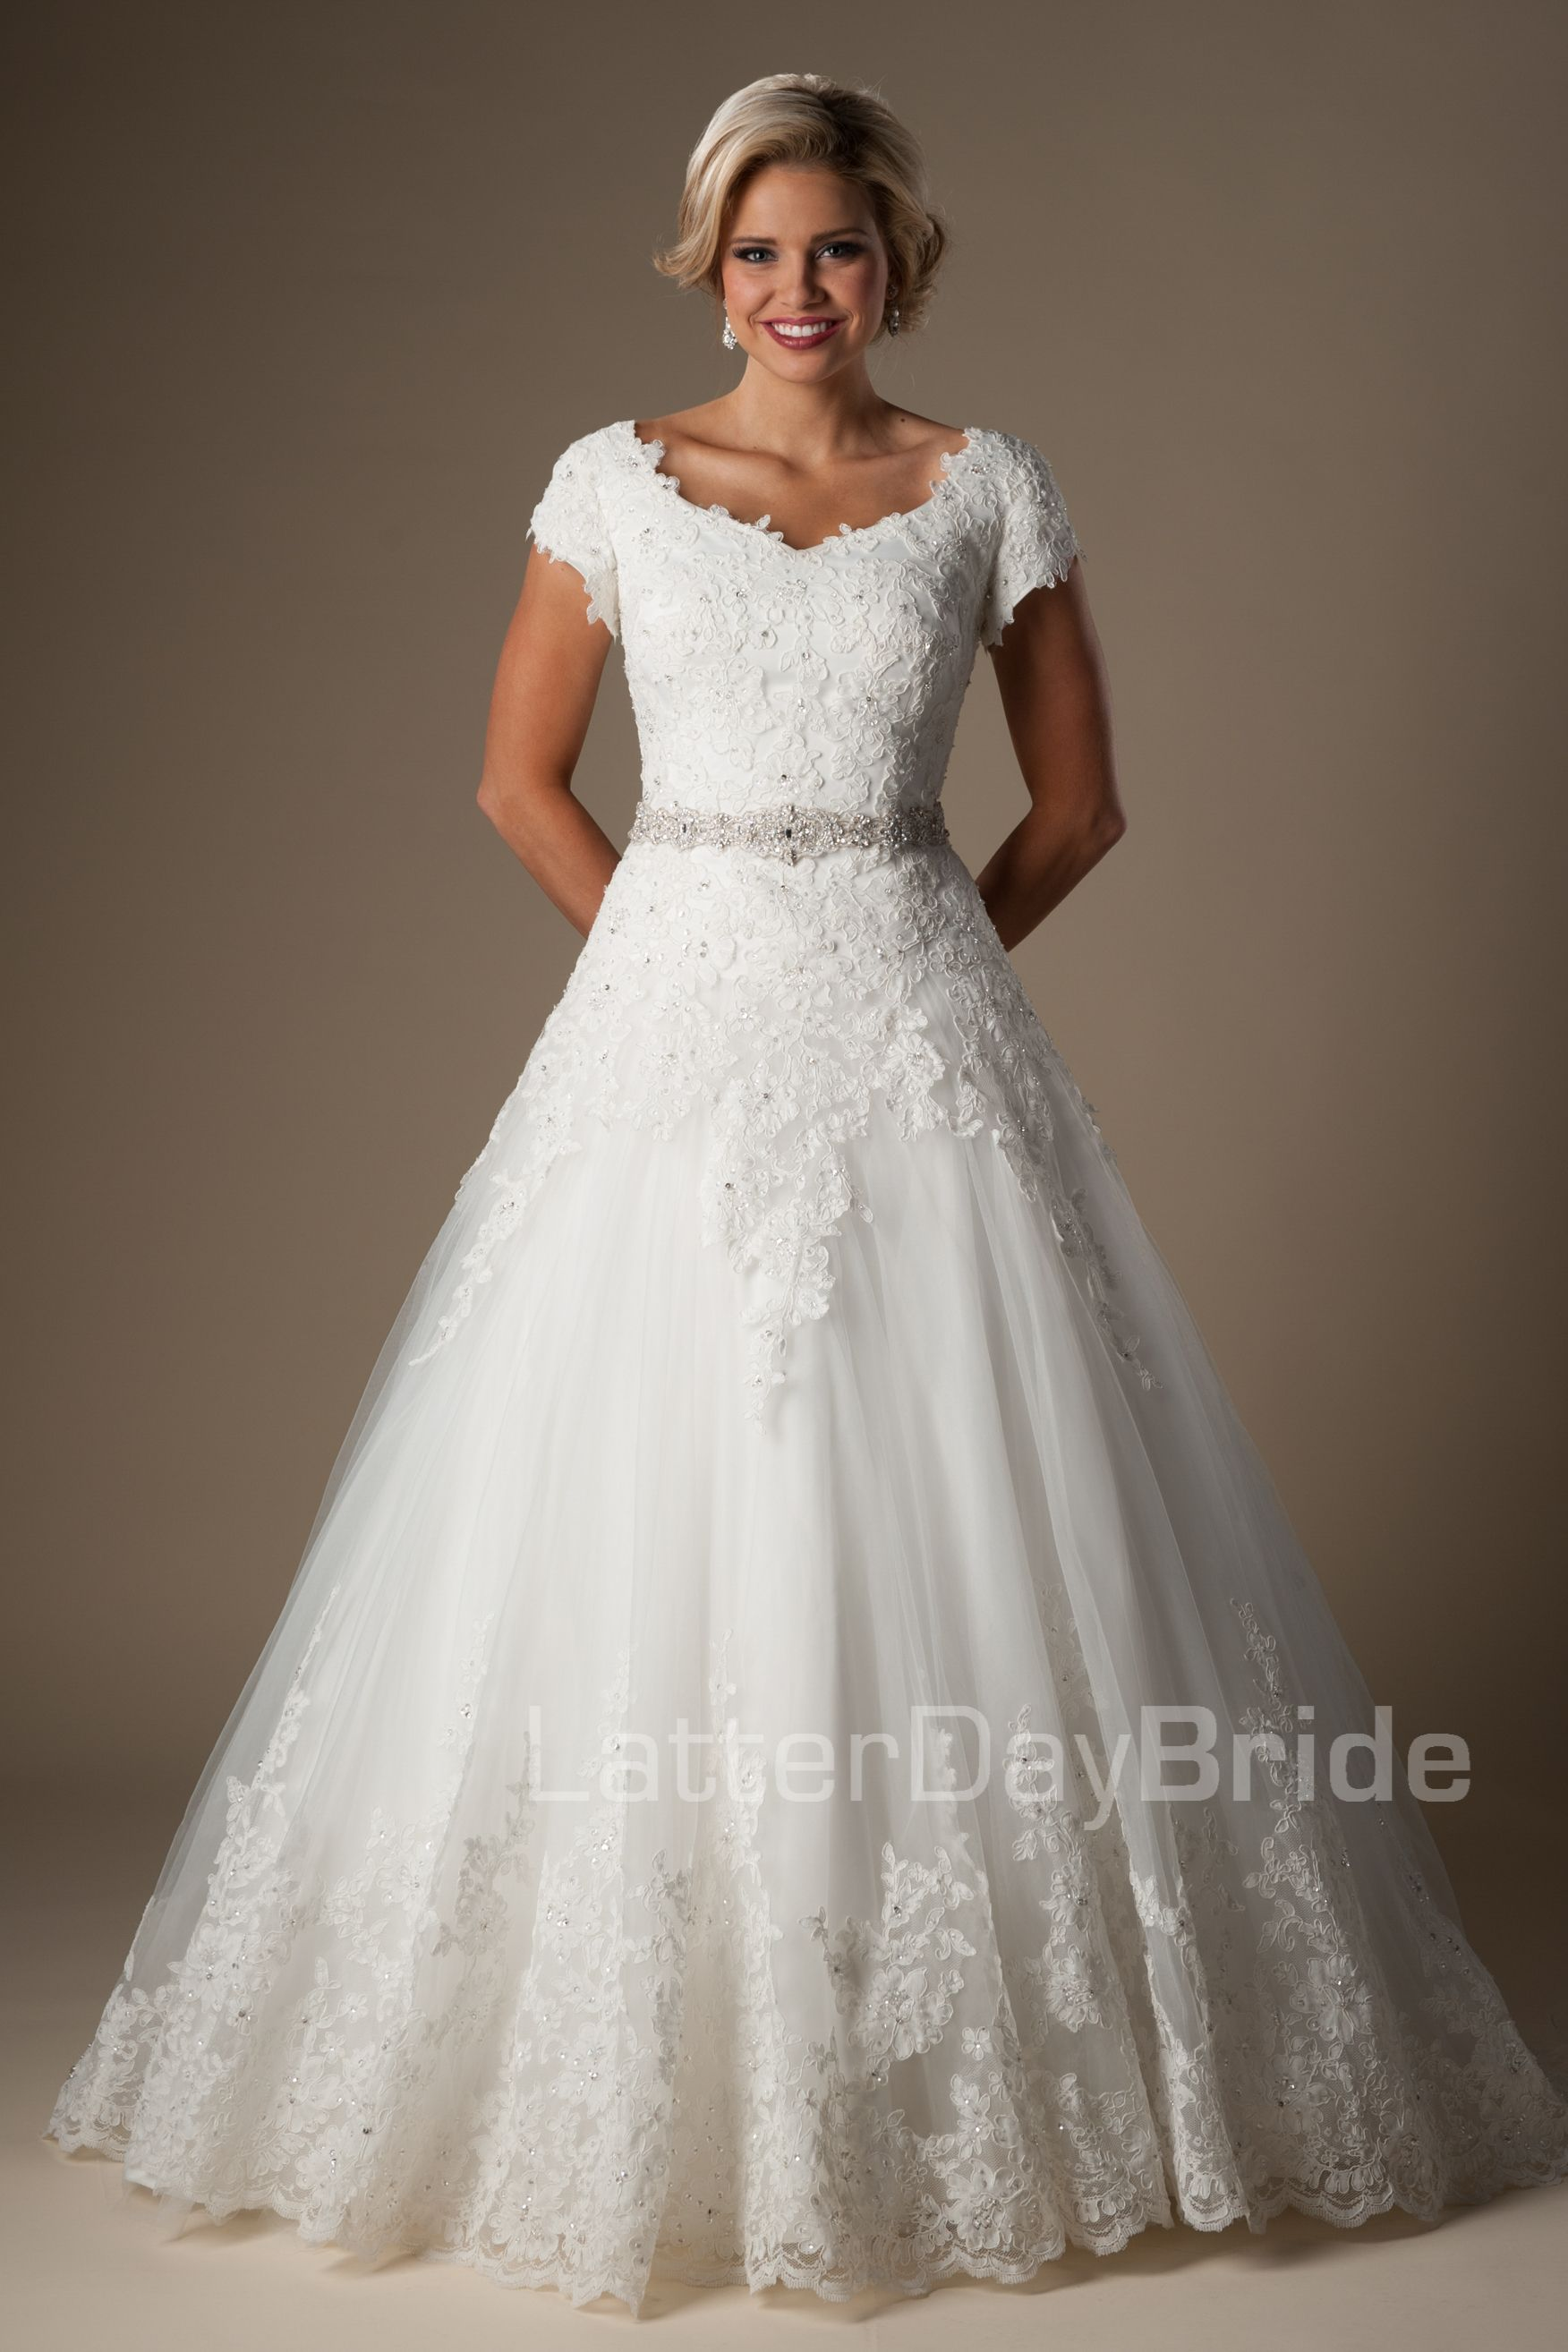 Ballgown (Wedding) : Billingham | novia modesto | Pinterest ...